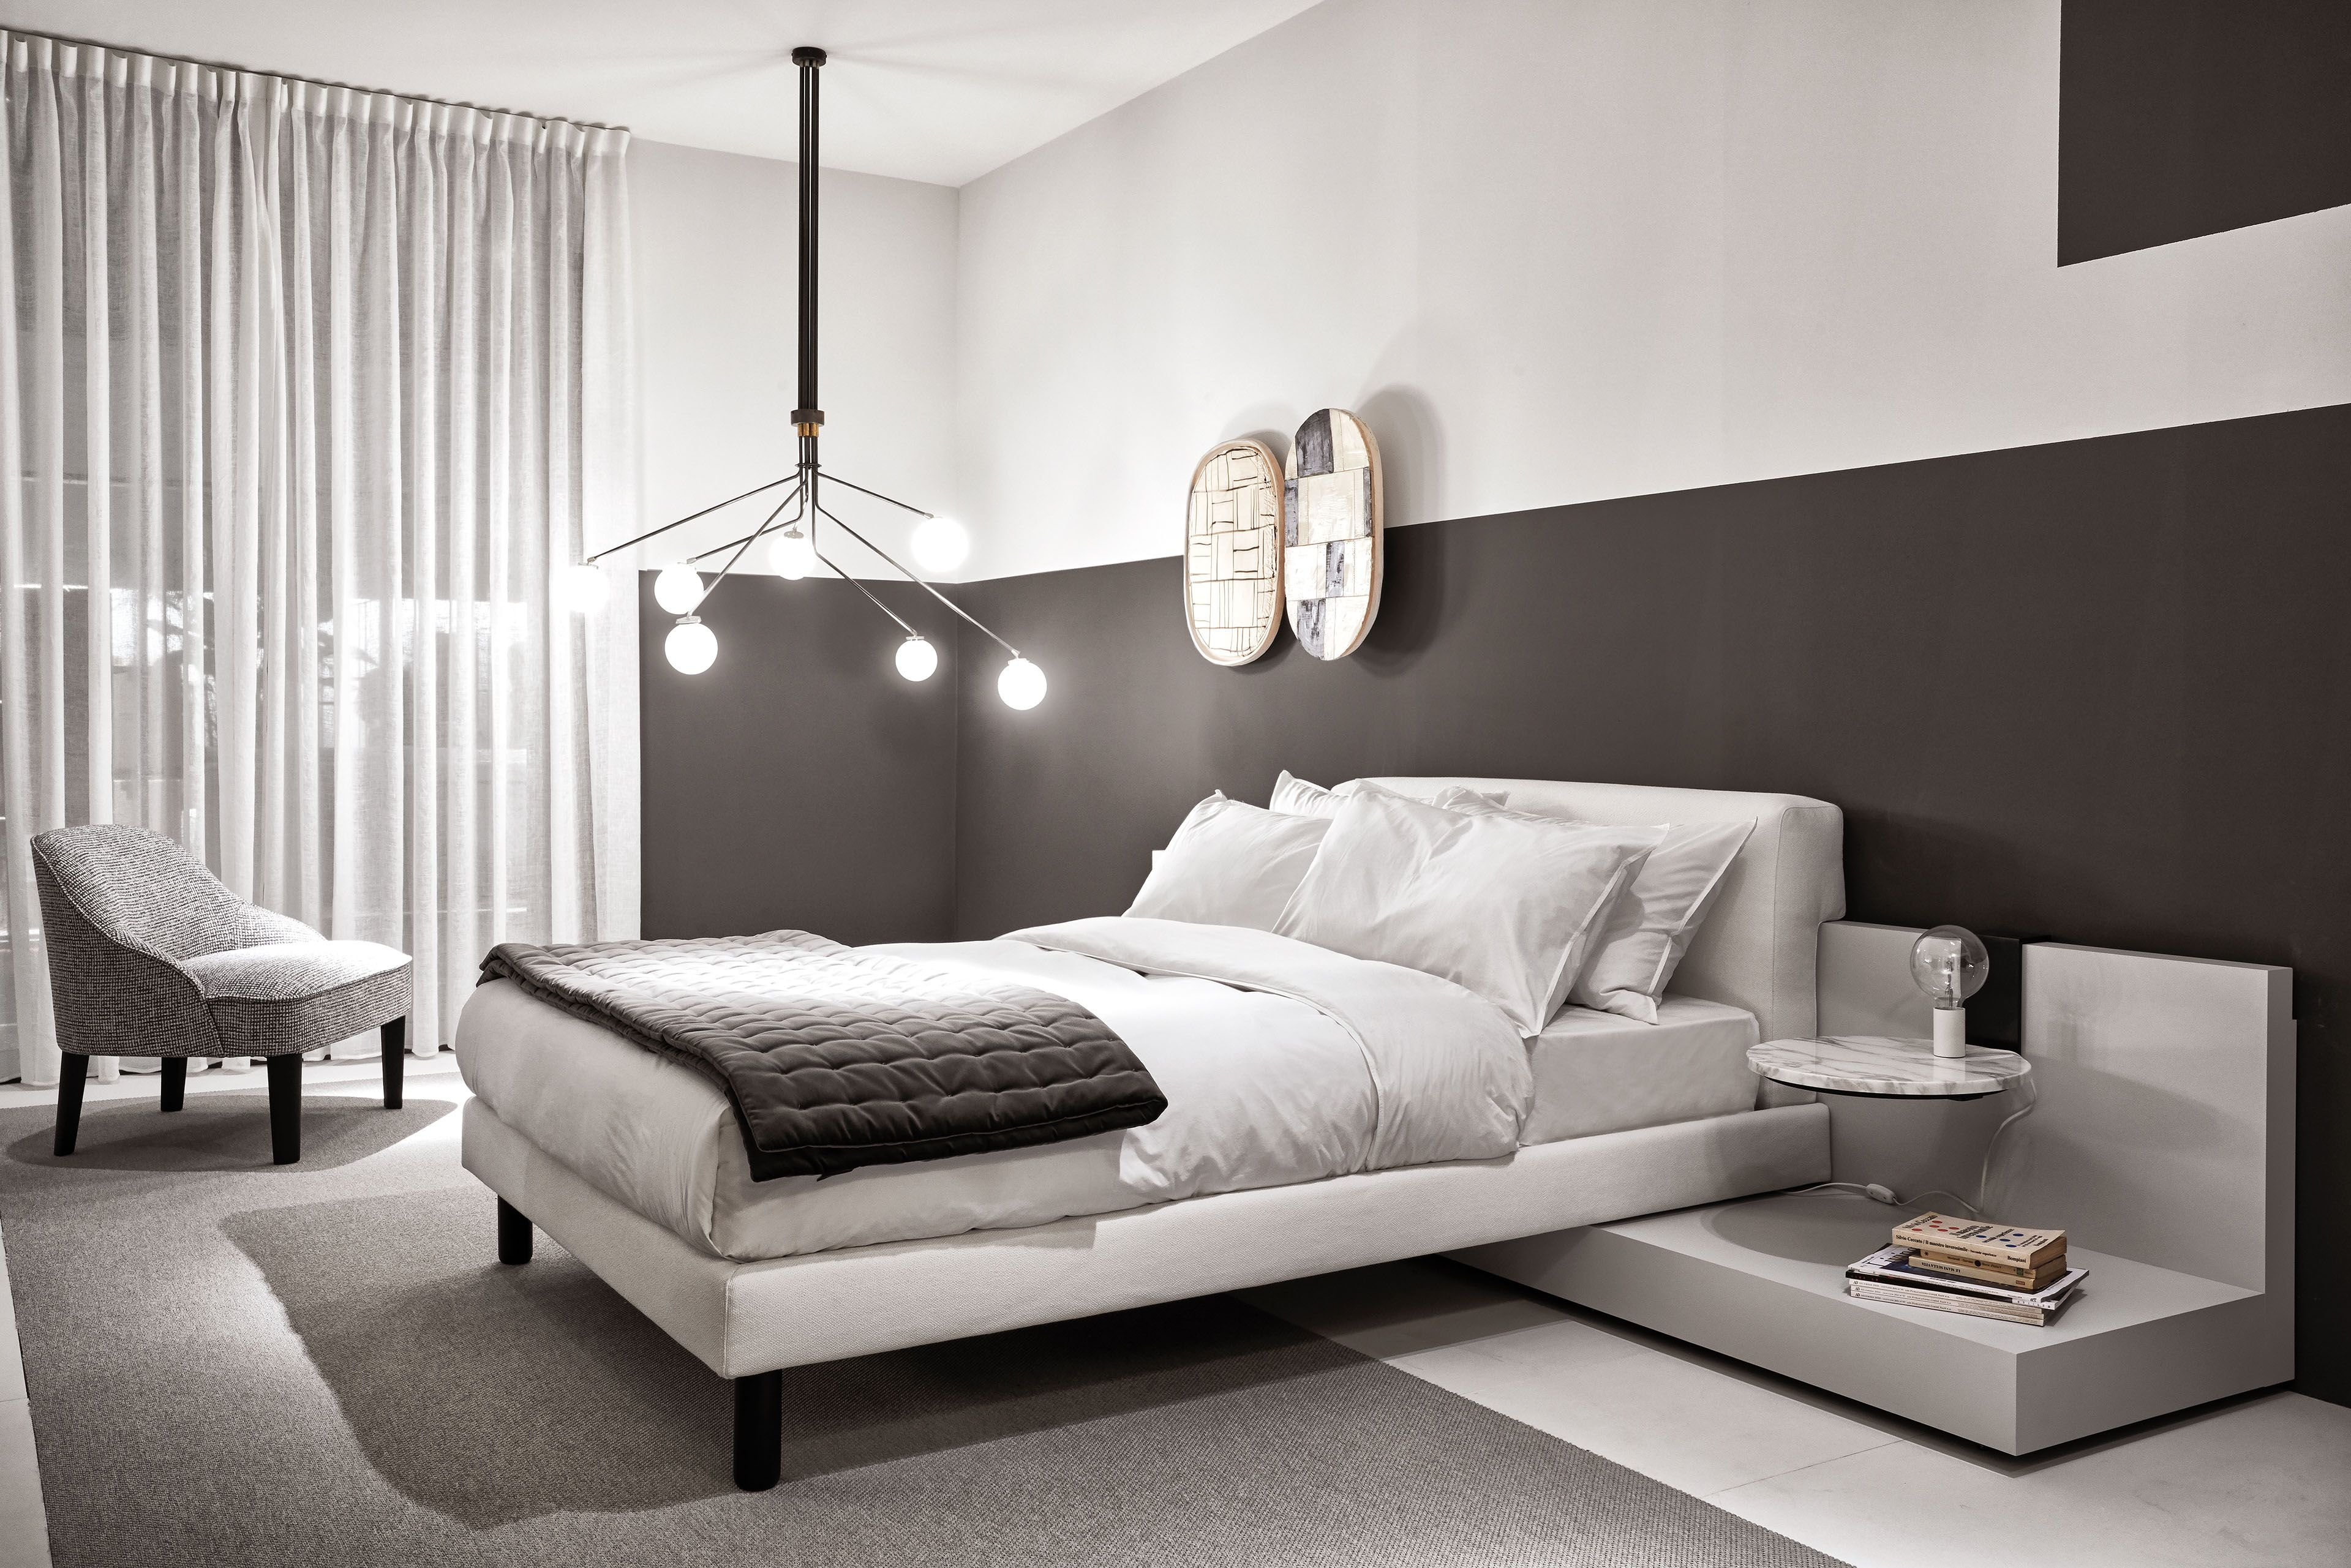 wood base bed furniture design cliff. cliff modular bed with kira small armchair wood base furniture design a